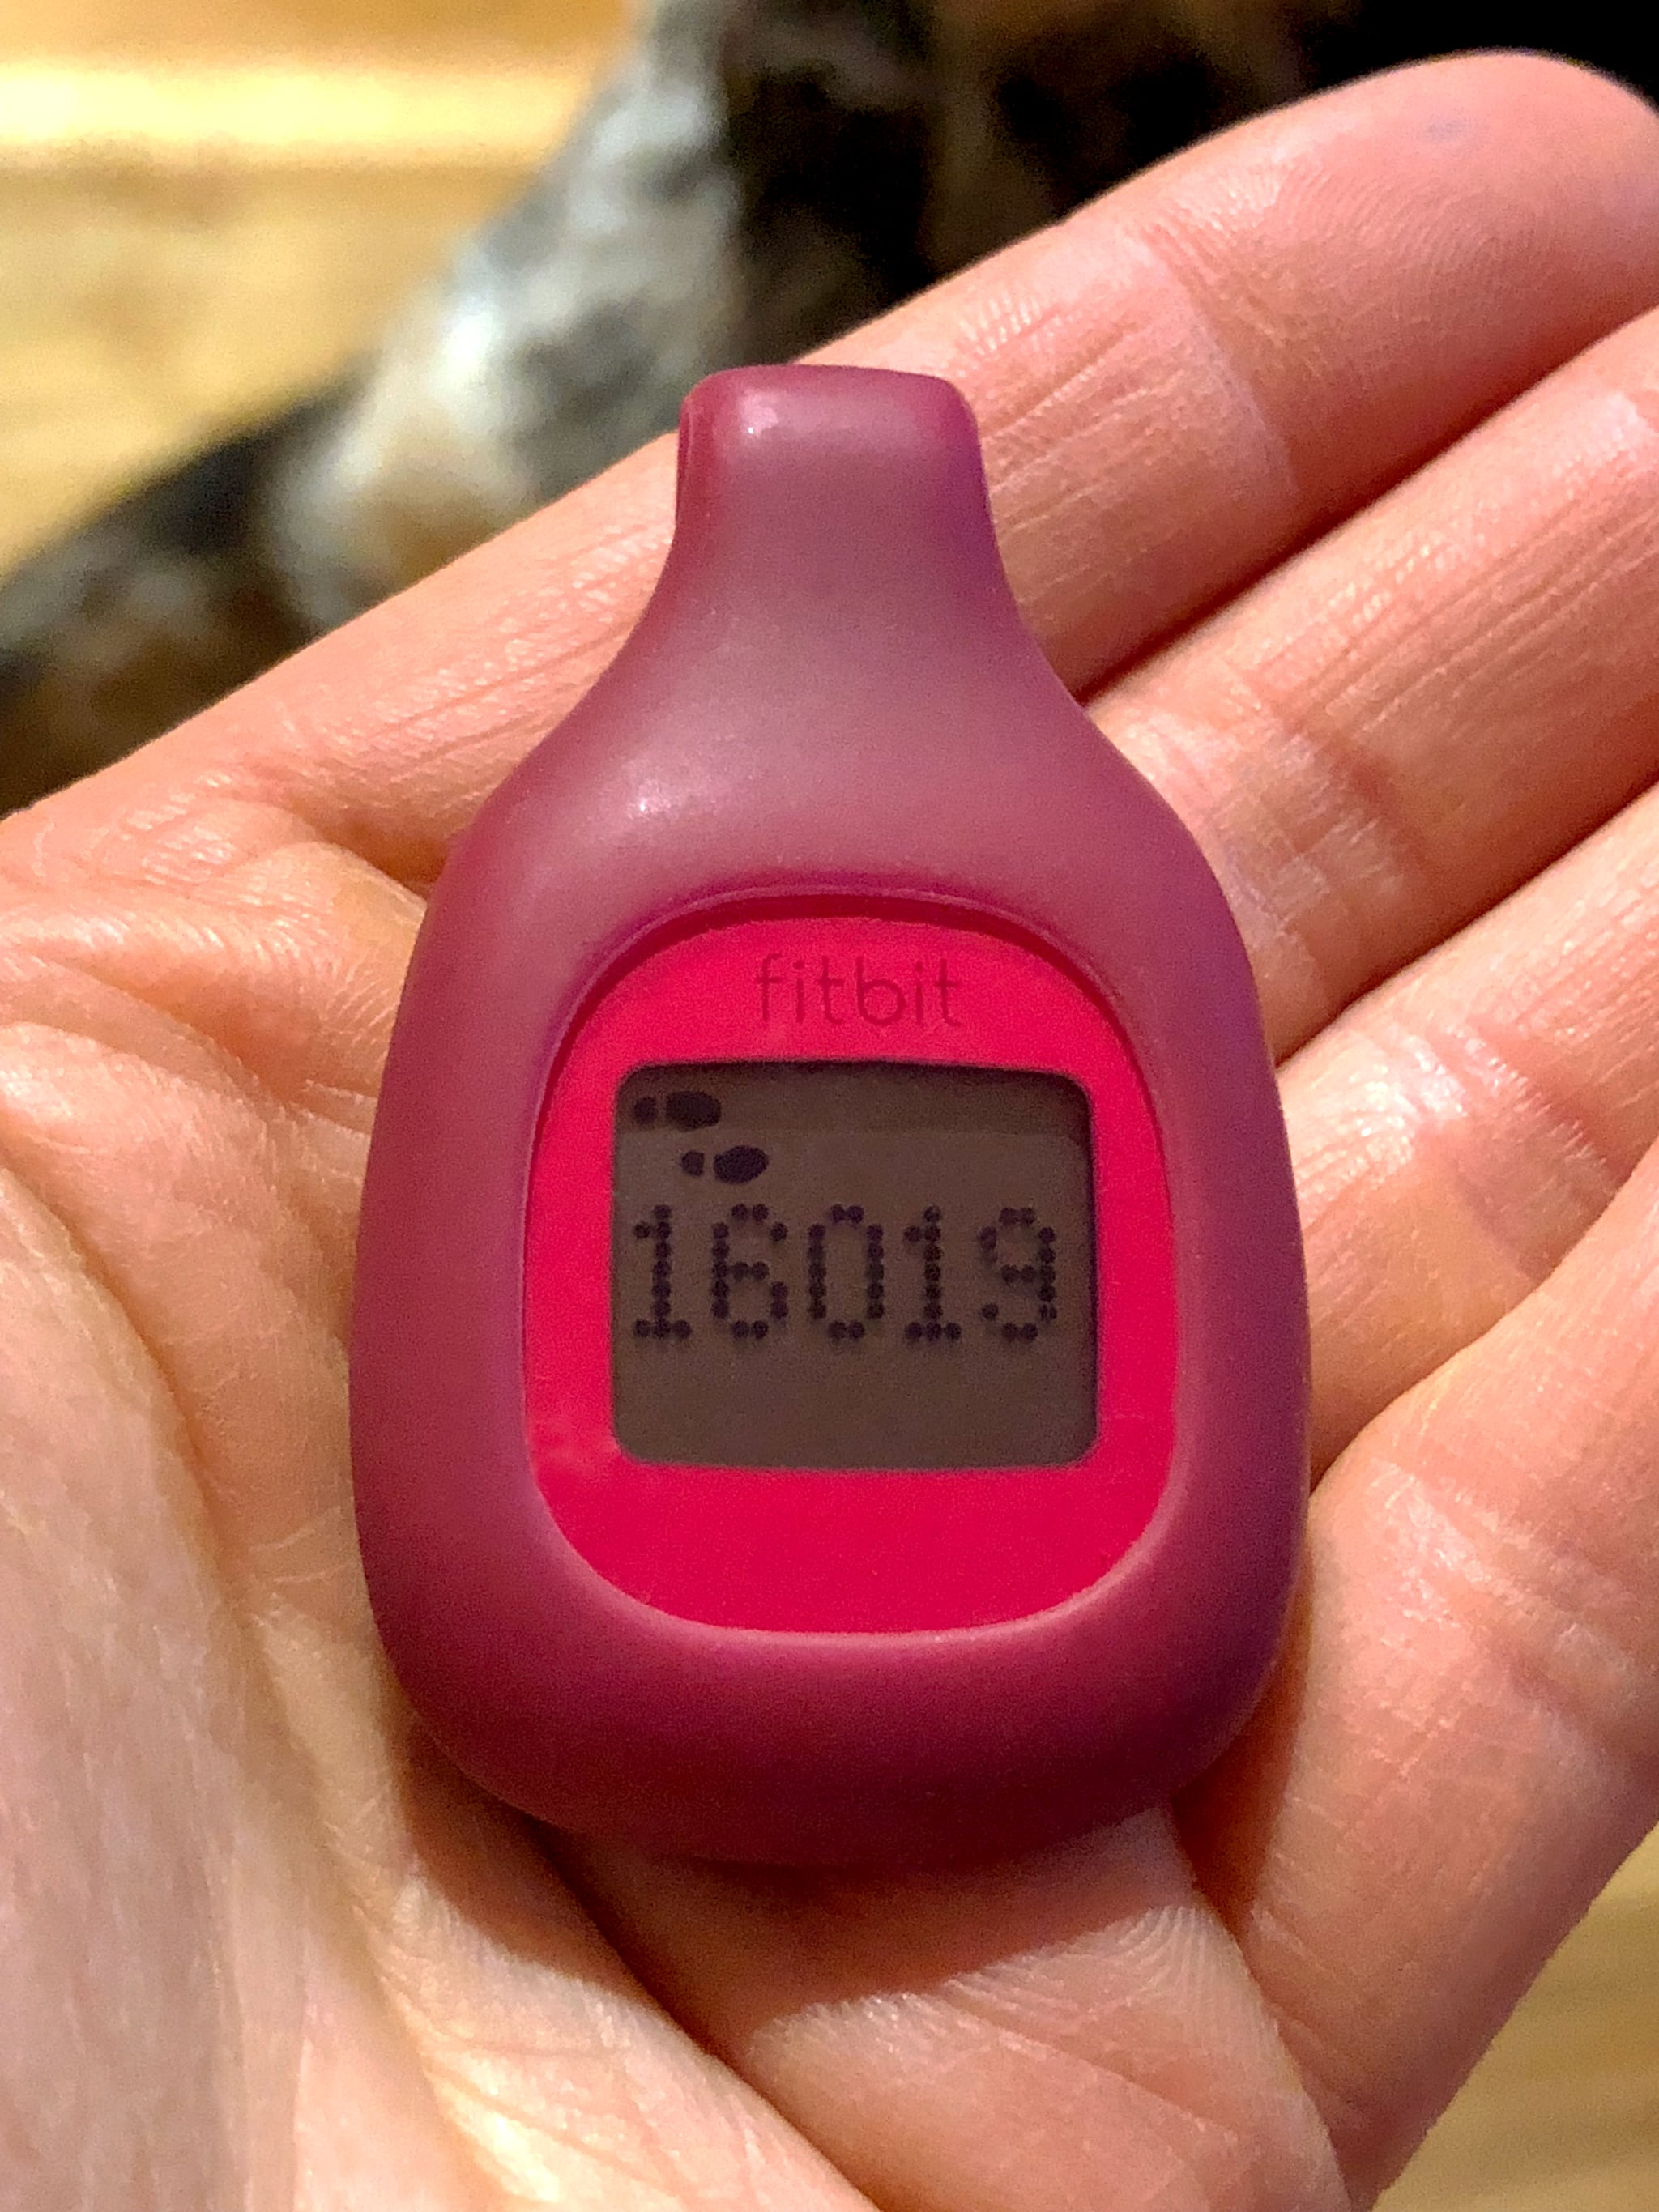 I Committed to 15,000 Steps a Day For 1 Week, and This Is What Happened